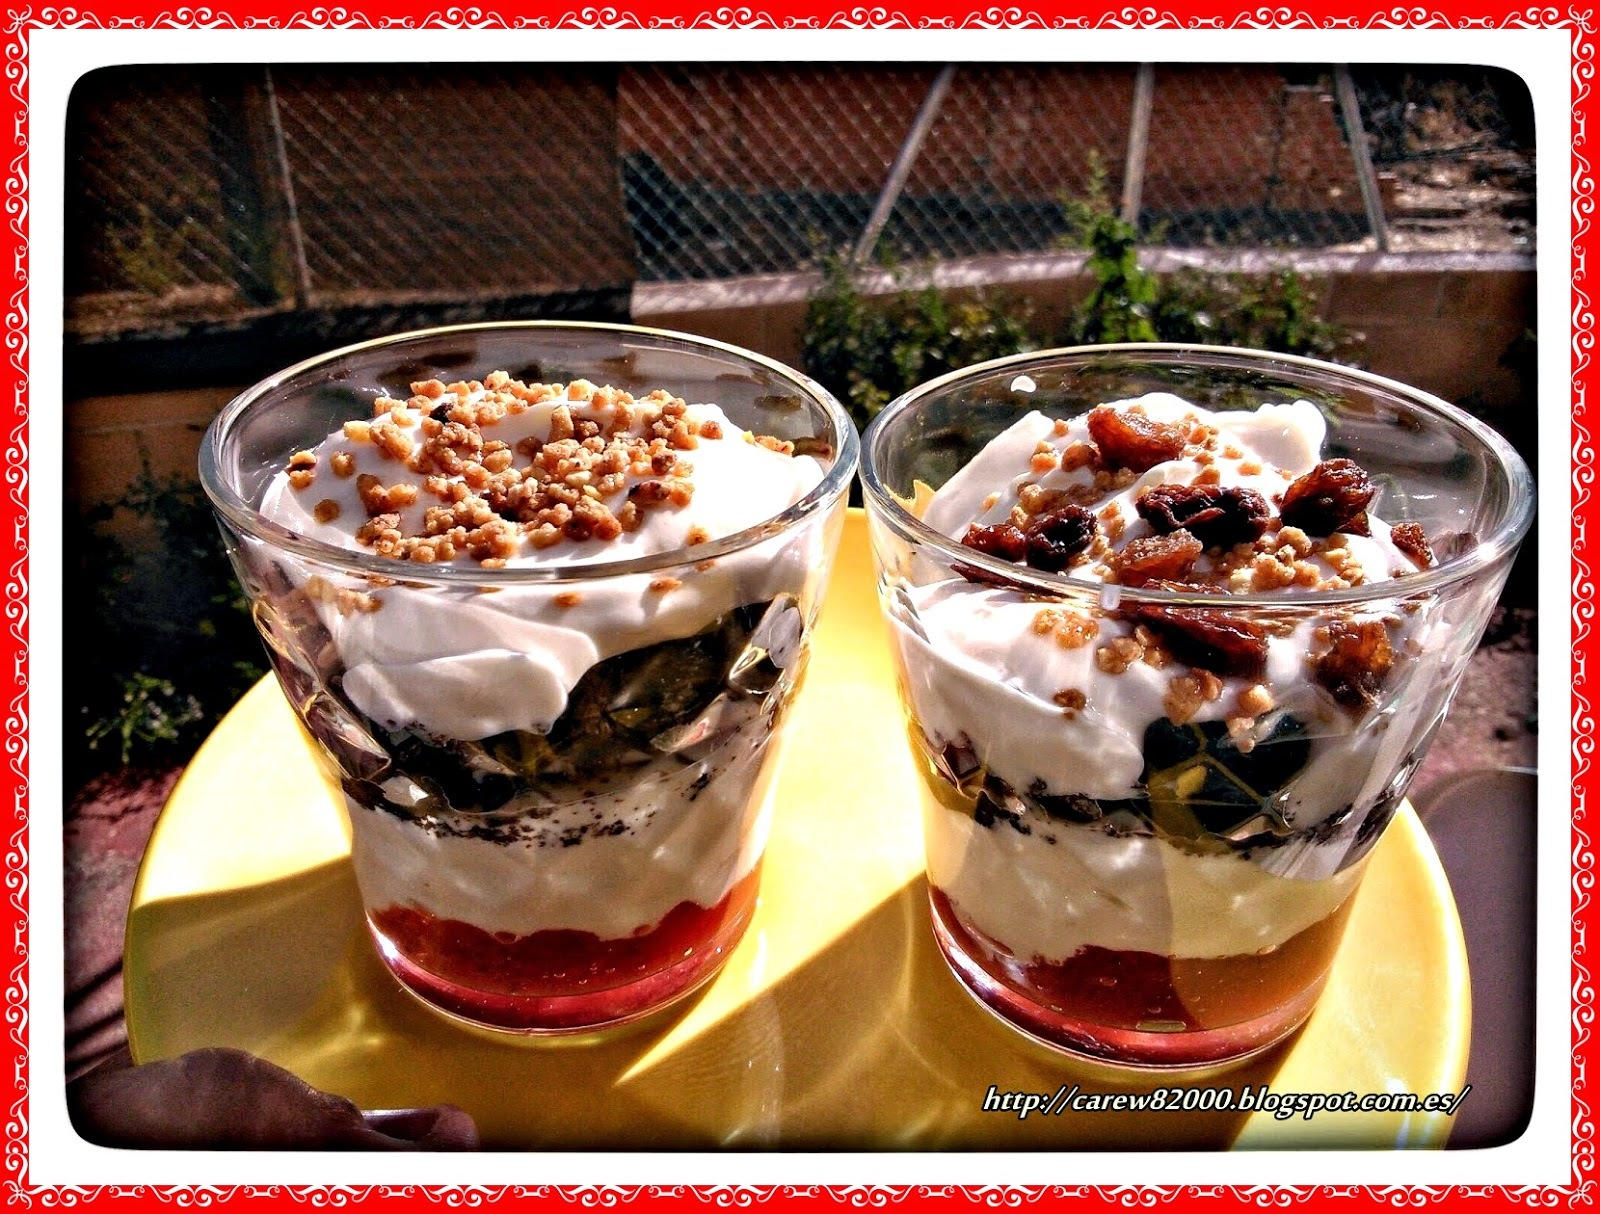 Yogurt con galletas oreo y mermelada